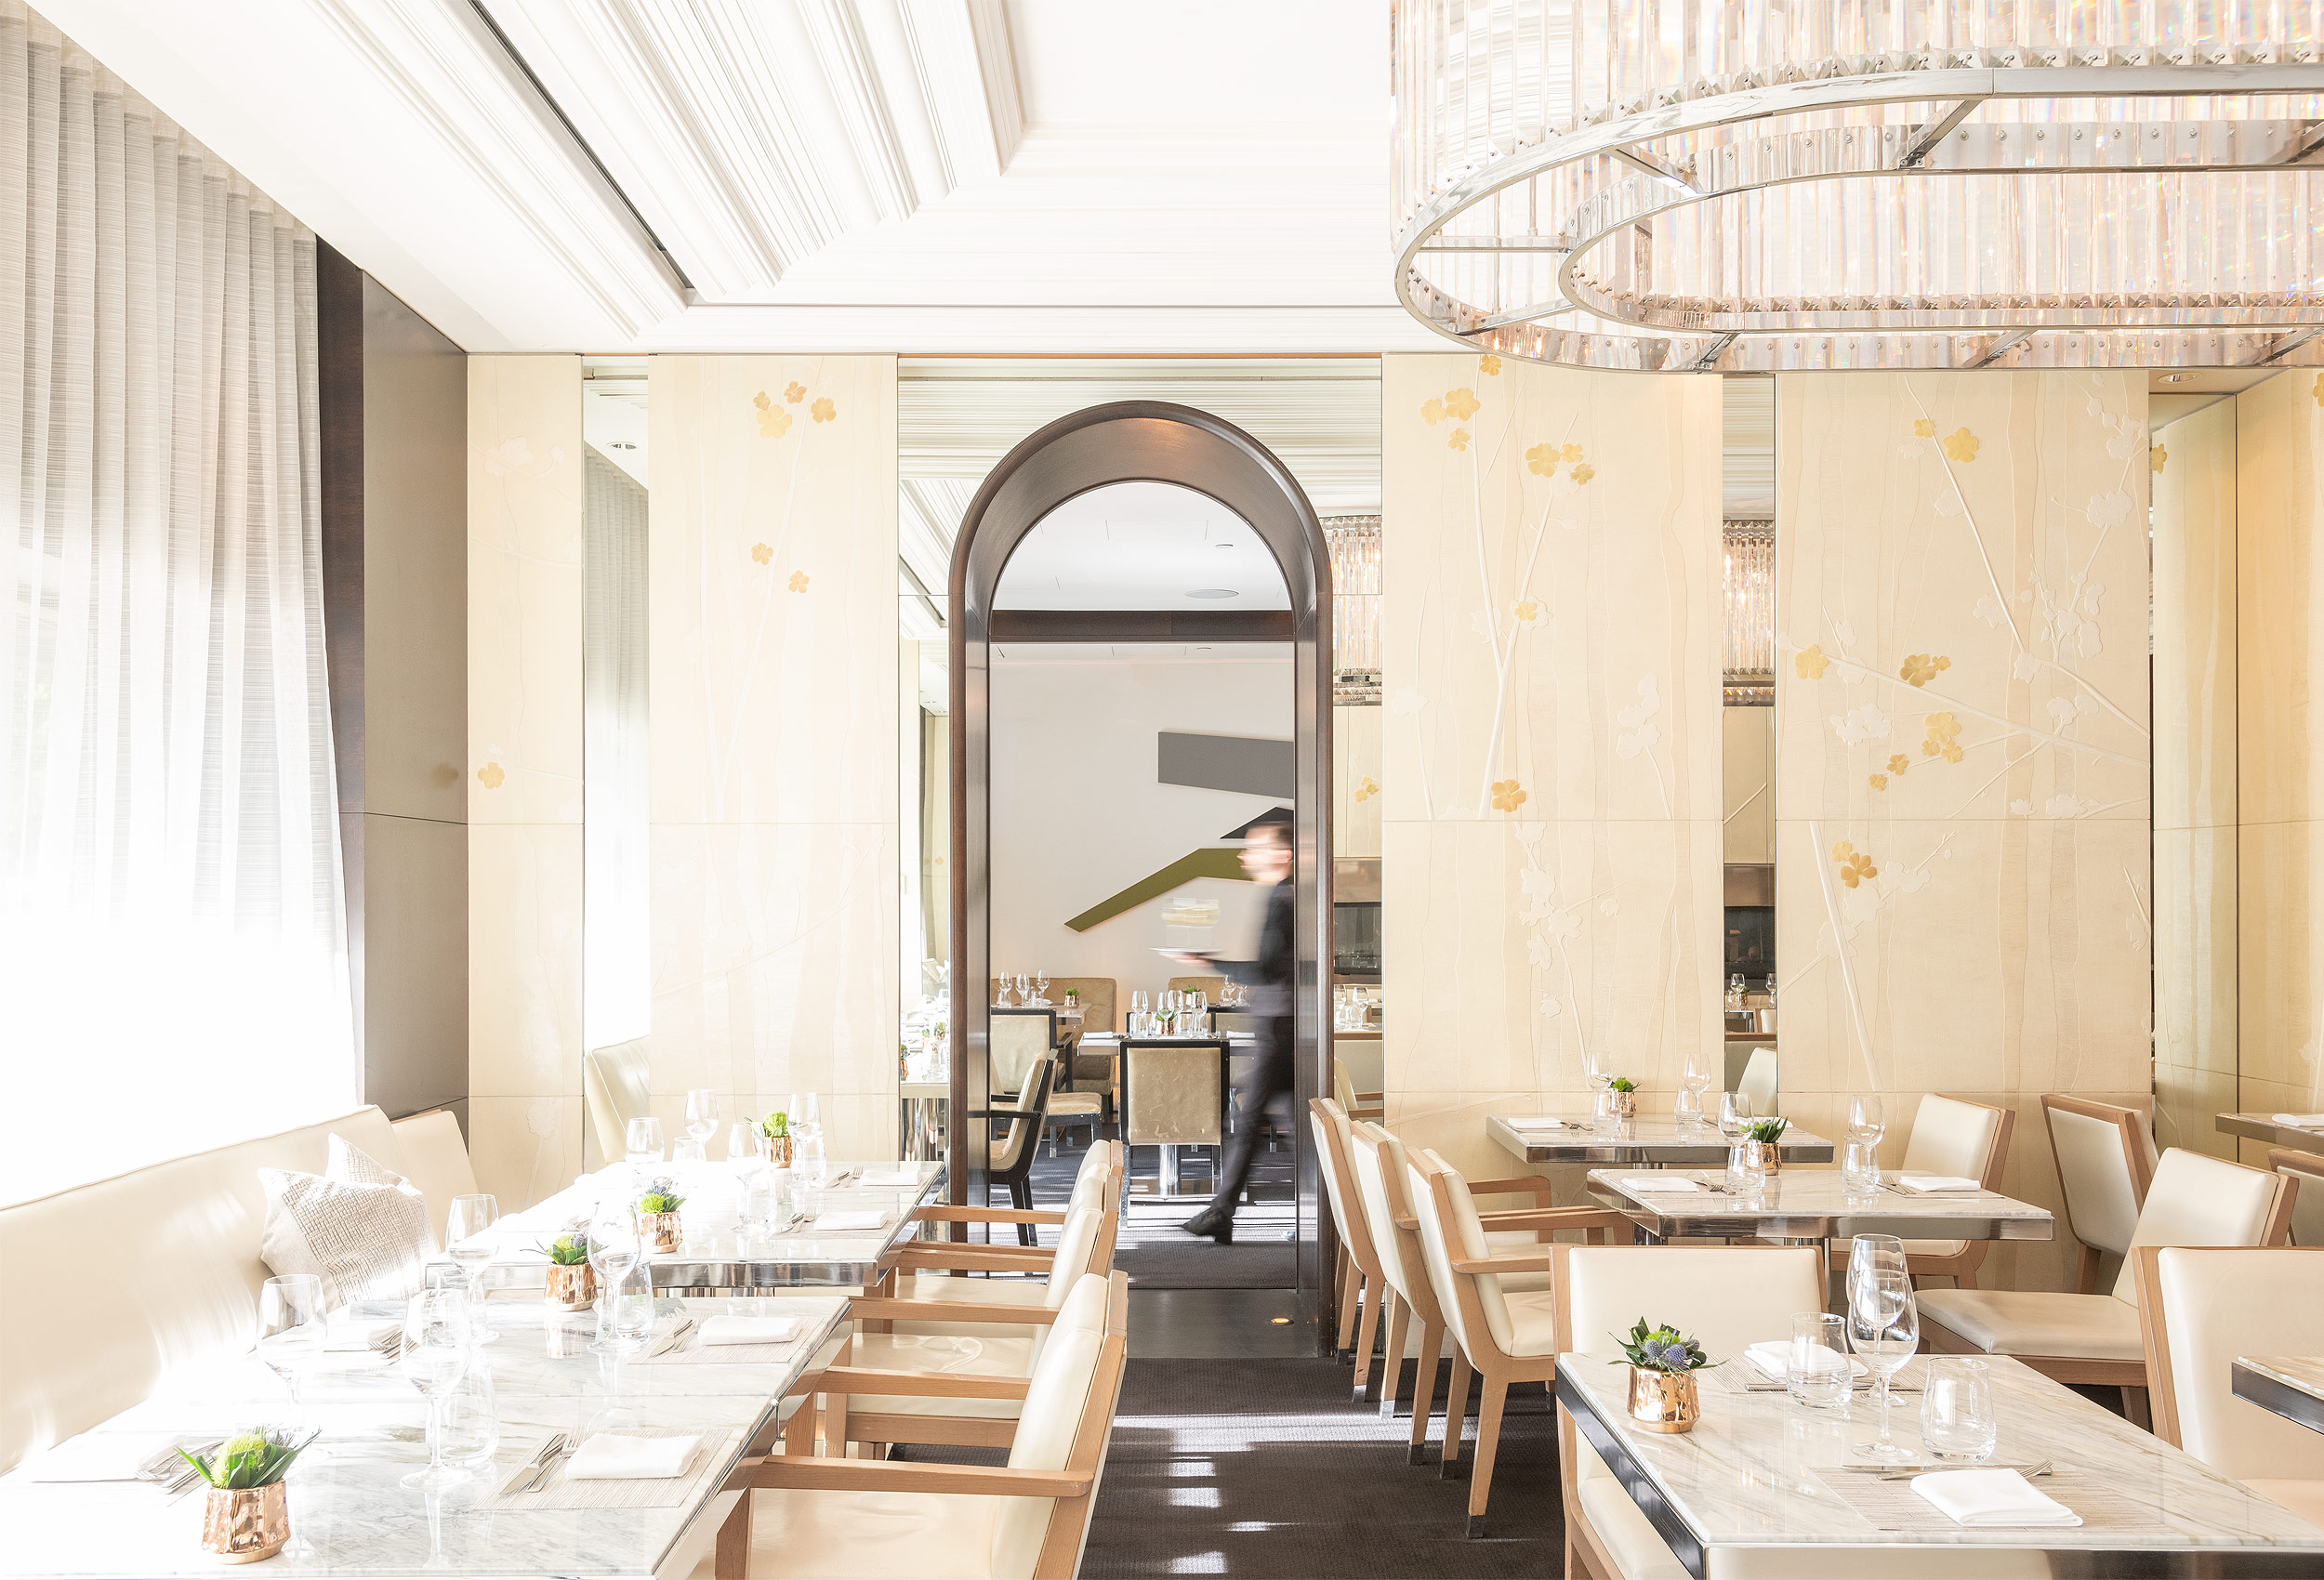 Interior of  Hawksworth by architectural photographer Kristopher Grunert